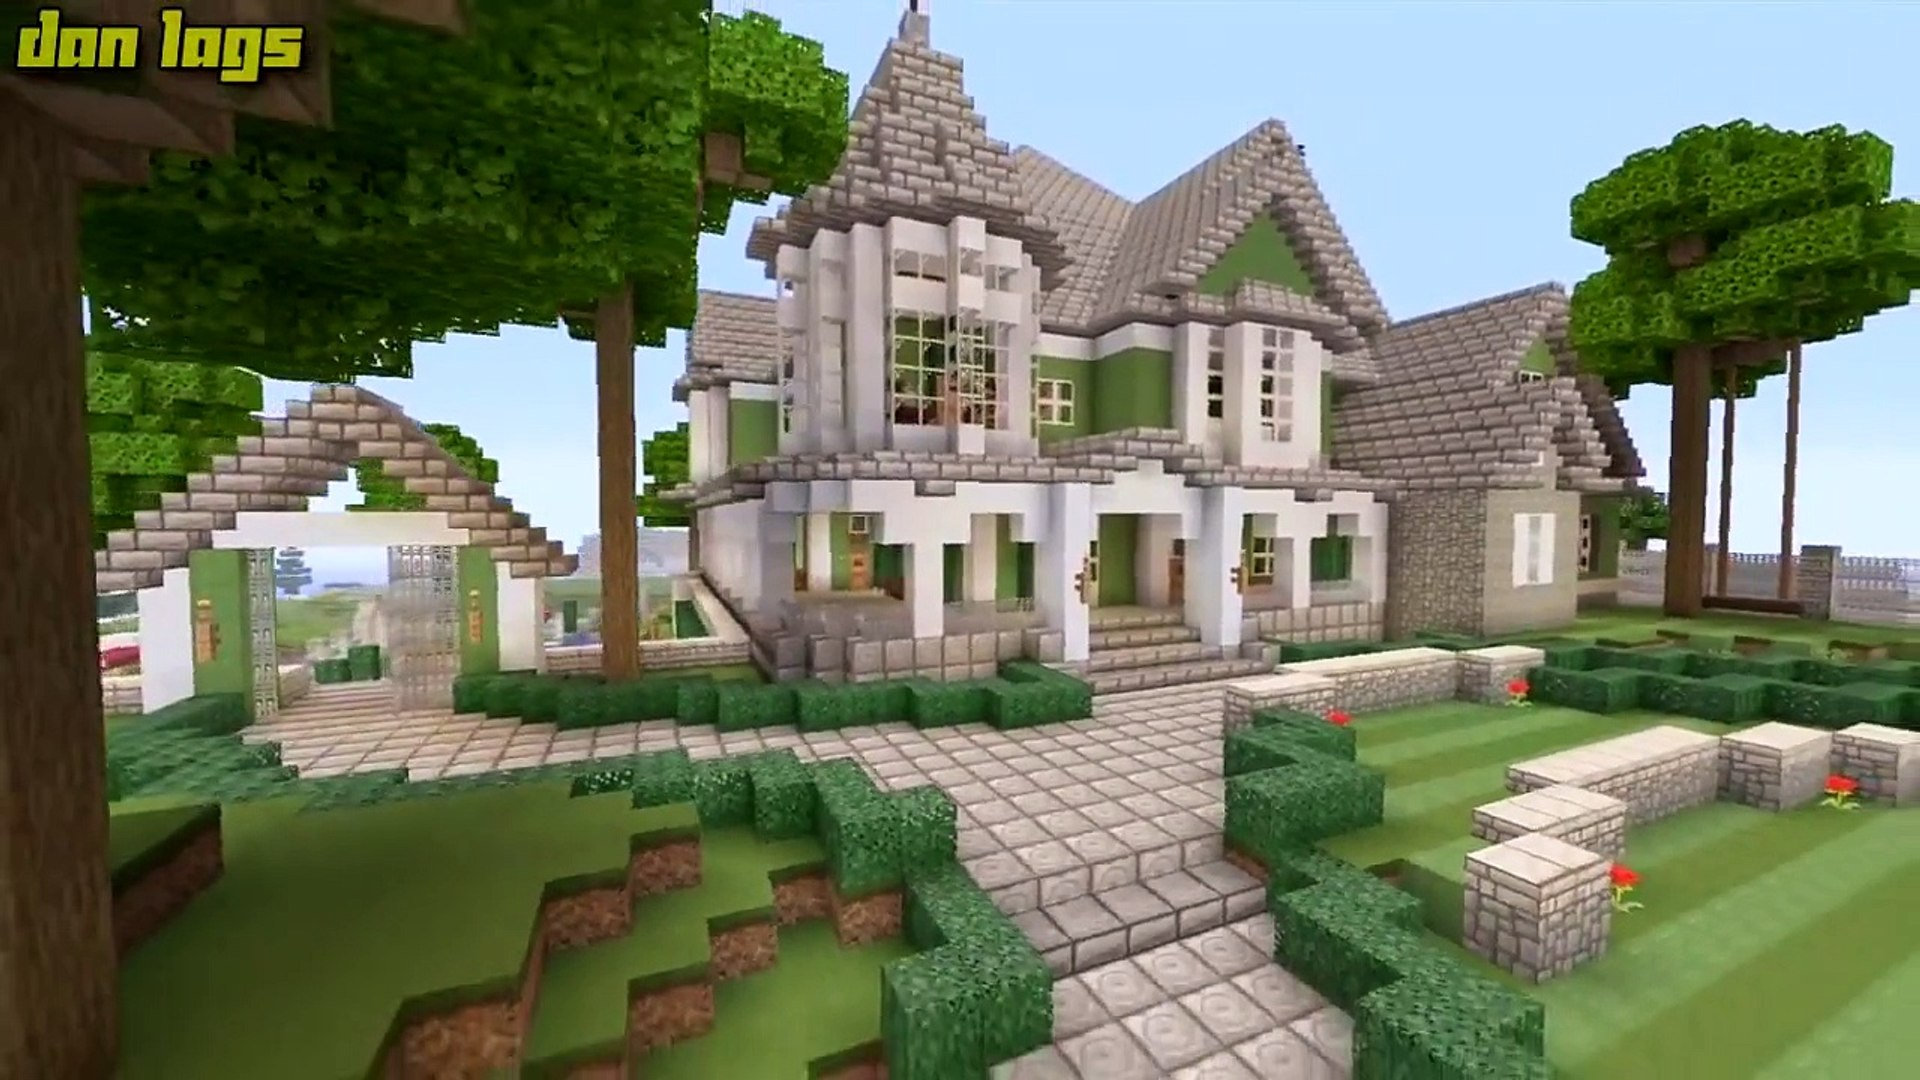 Minecraft Xbox 360 Big Traditional Mansion House Tours Of Los Dangeles Ep 3 Video Dailymotion